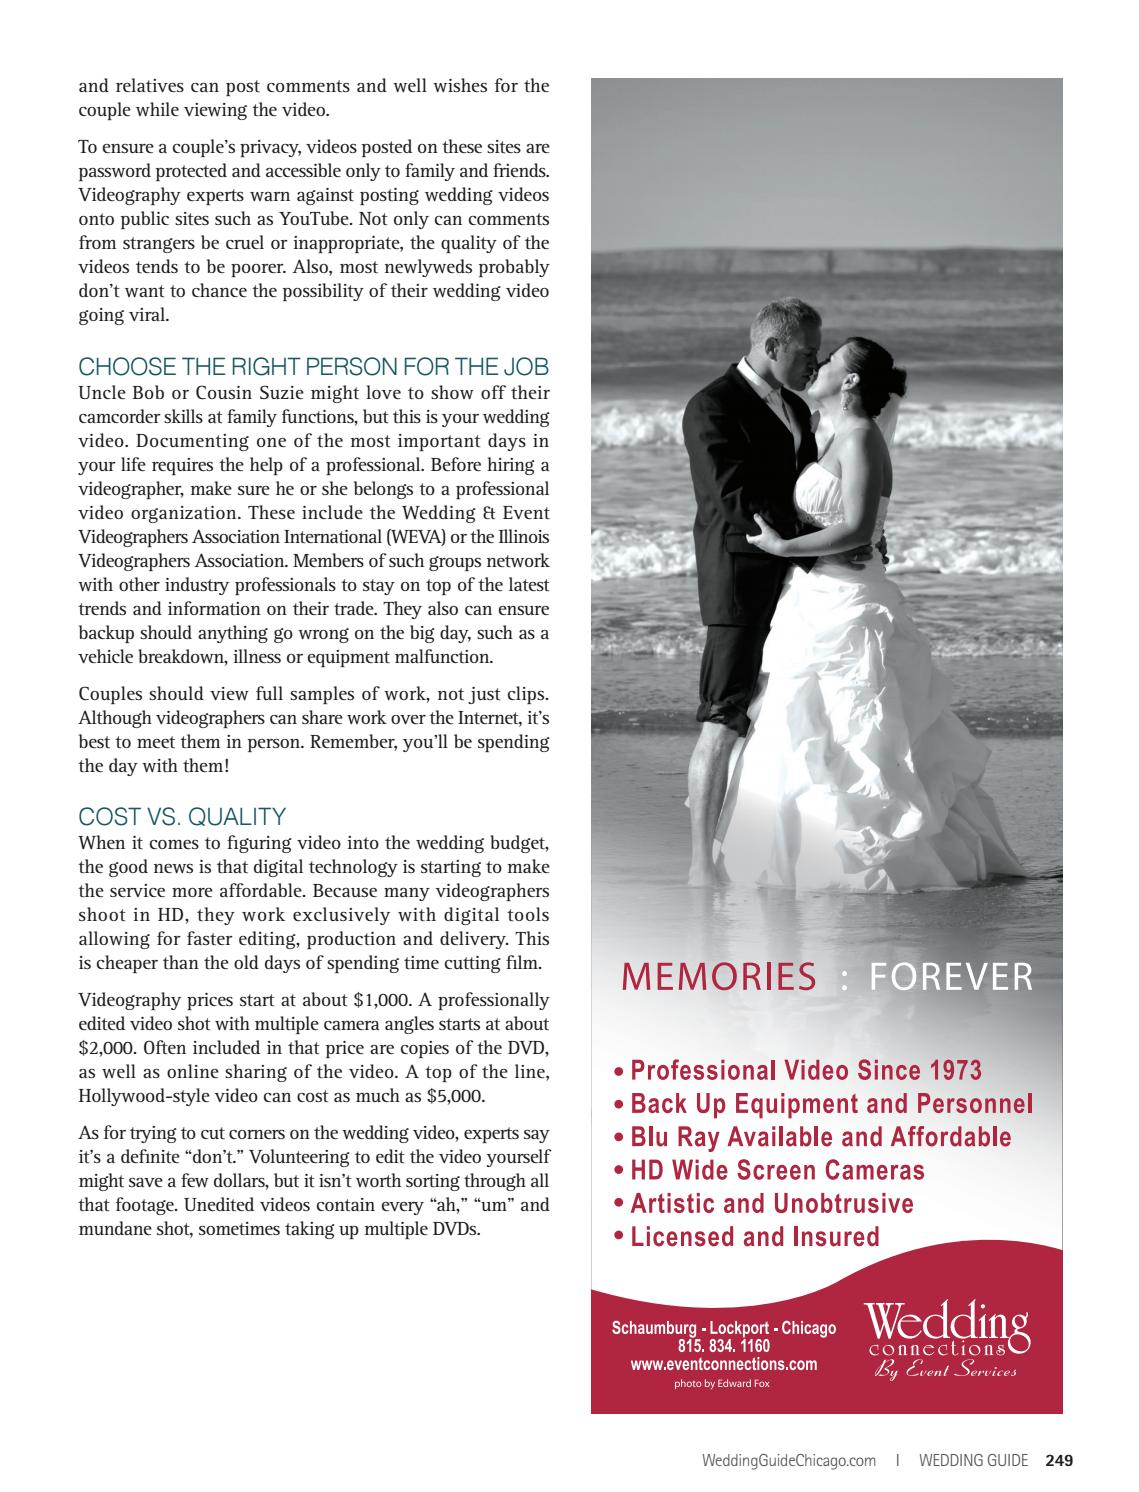 Wedding Guide Chicago 2016 by Wedding Guide Chicago - issuu